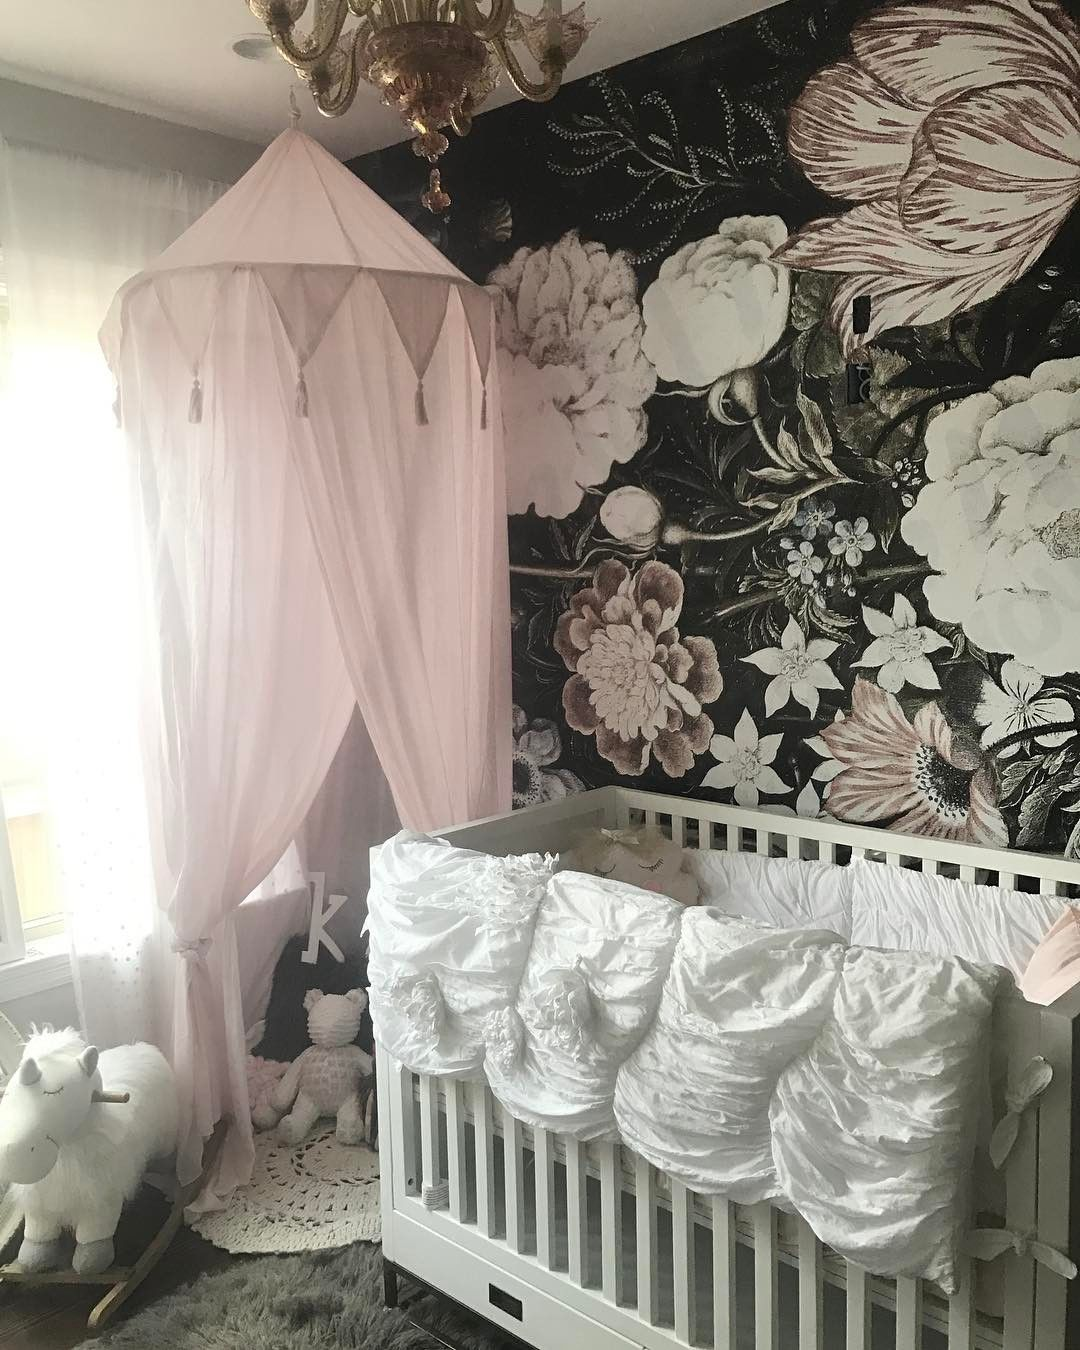 Stylish Vintage Nursery Decor   An Idea How To Use A Removable Wall Mural  In An